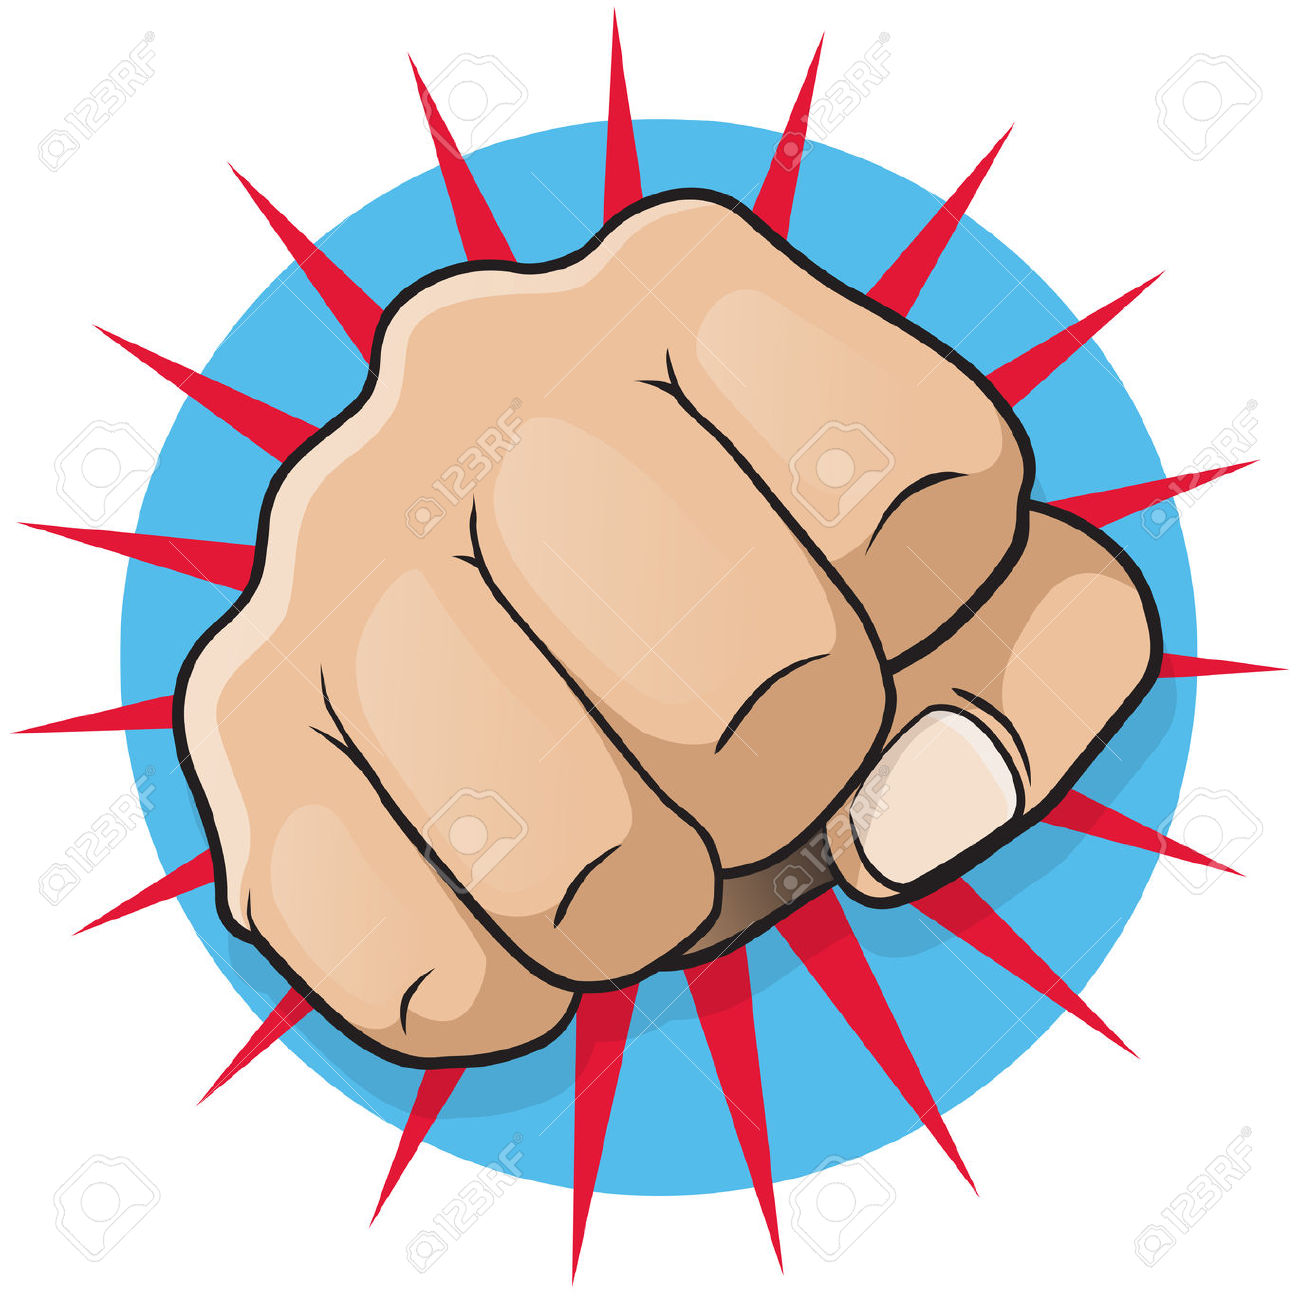 Fist Clipart Fist Punching Fist Fist Punching Transparent Free For Download On Webstockreview 2020